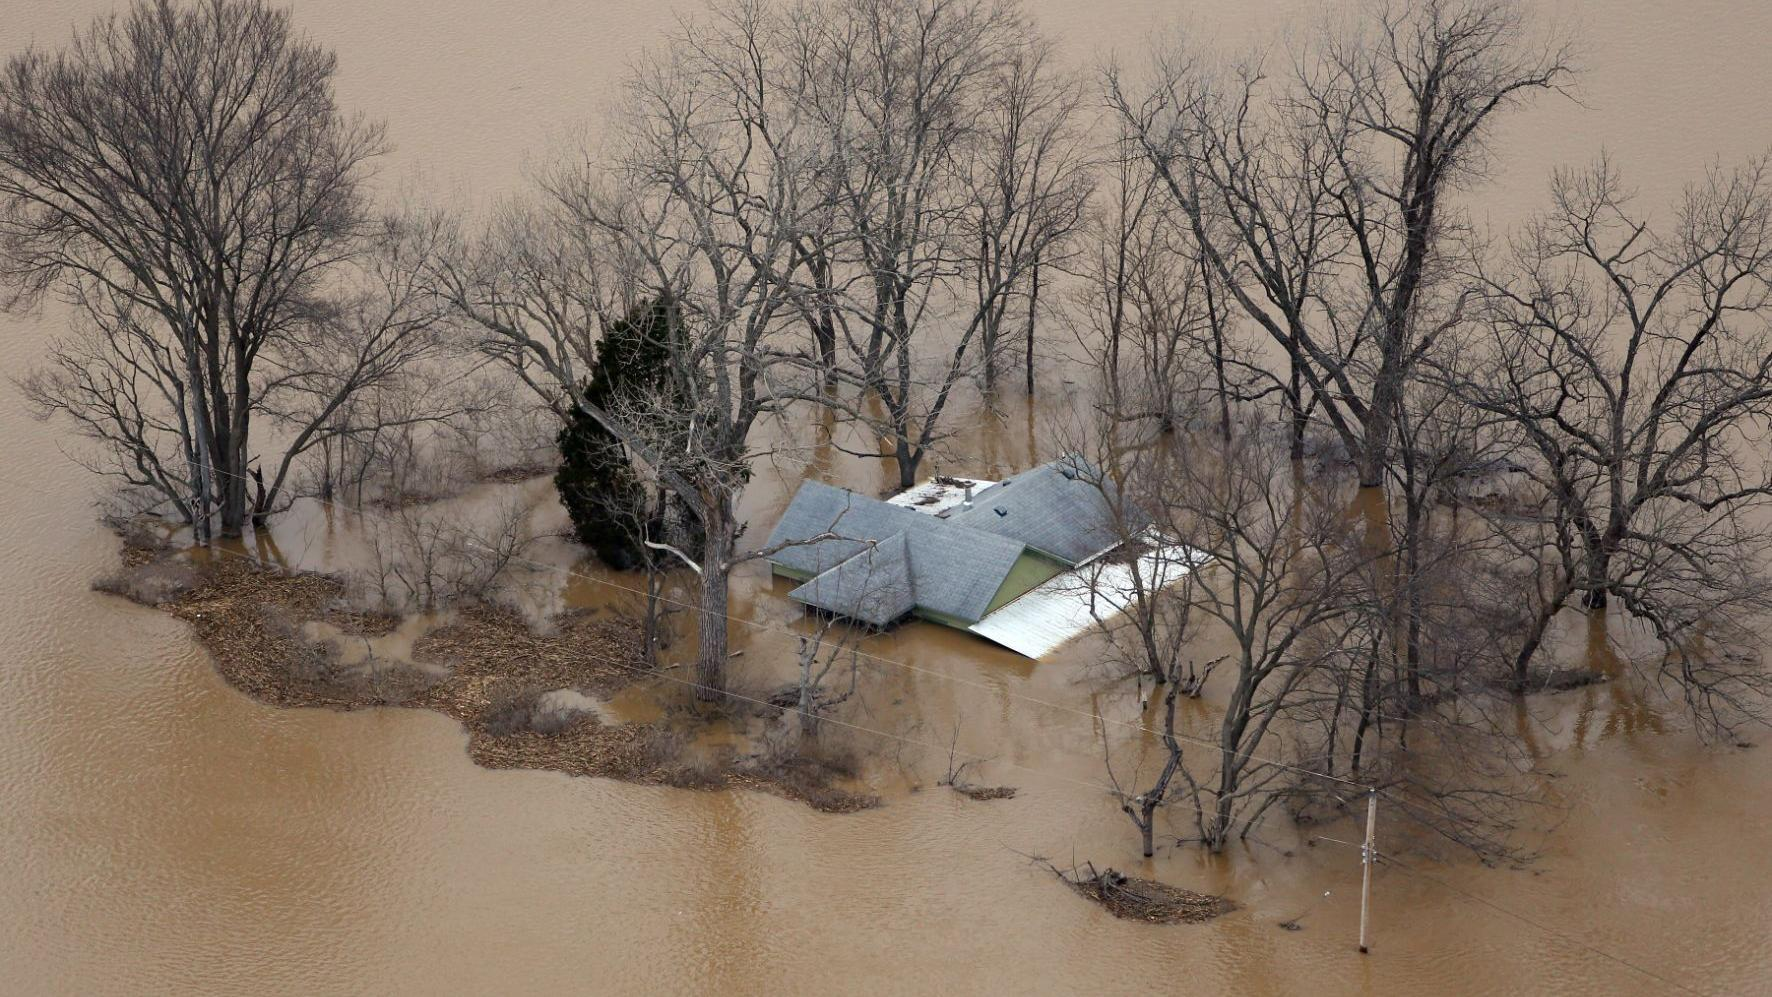 5 years ago: Aerial photos showed historic flooding on Meramec River